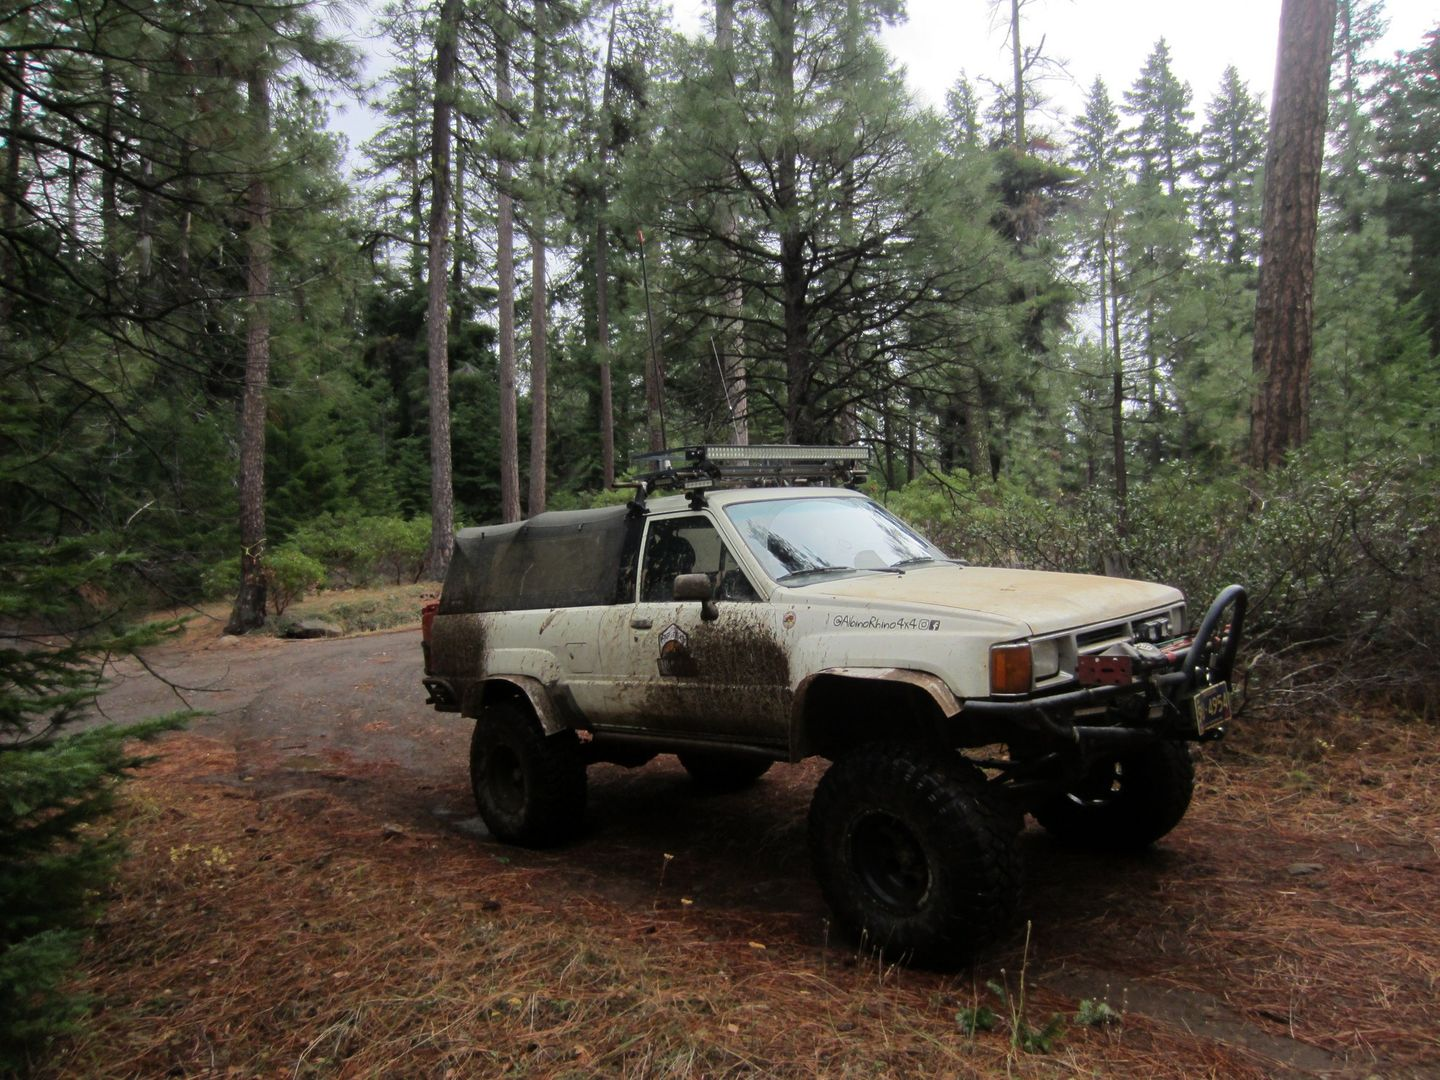 Barlow Trail - Waypoint 9: Continue Straight